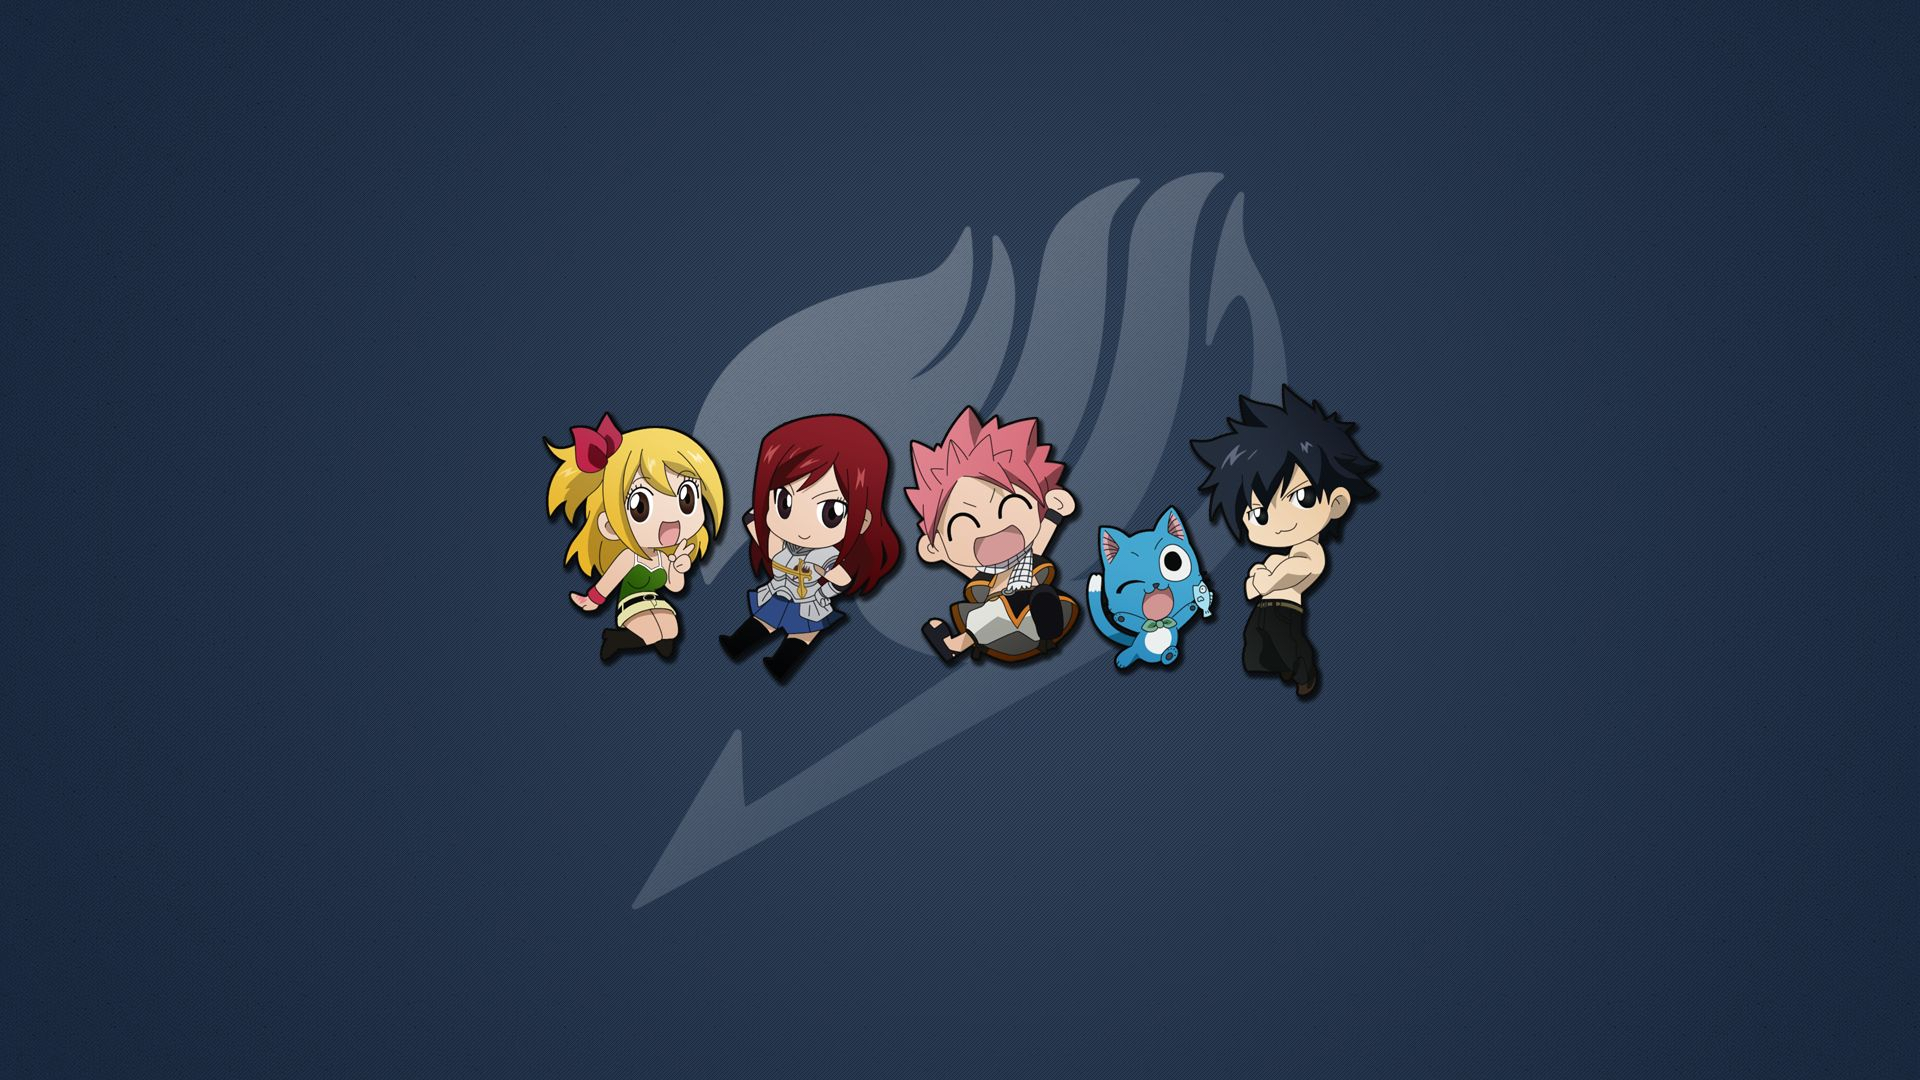 329 Fairy Tail Hd Wallpapers Backgrounds Wallpaper Abyss Fairy